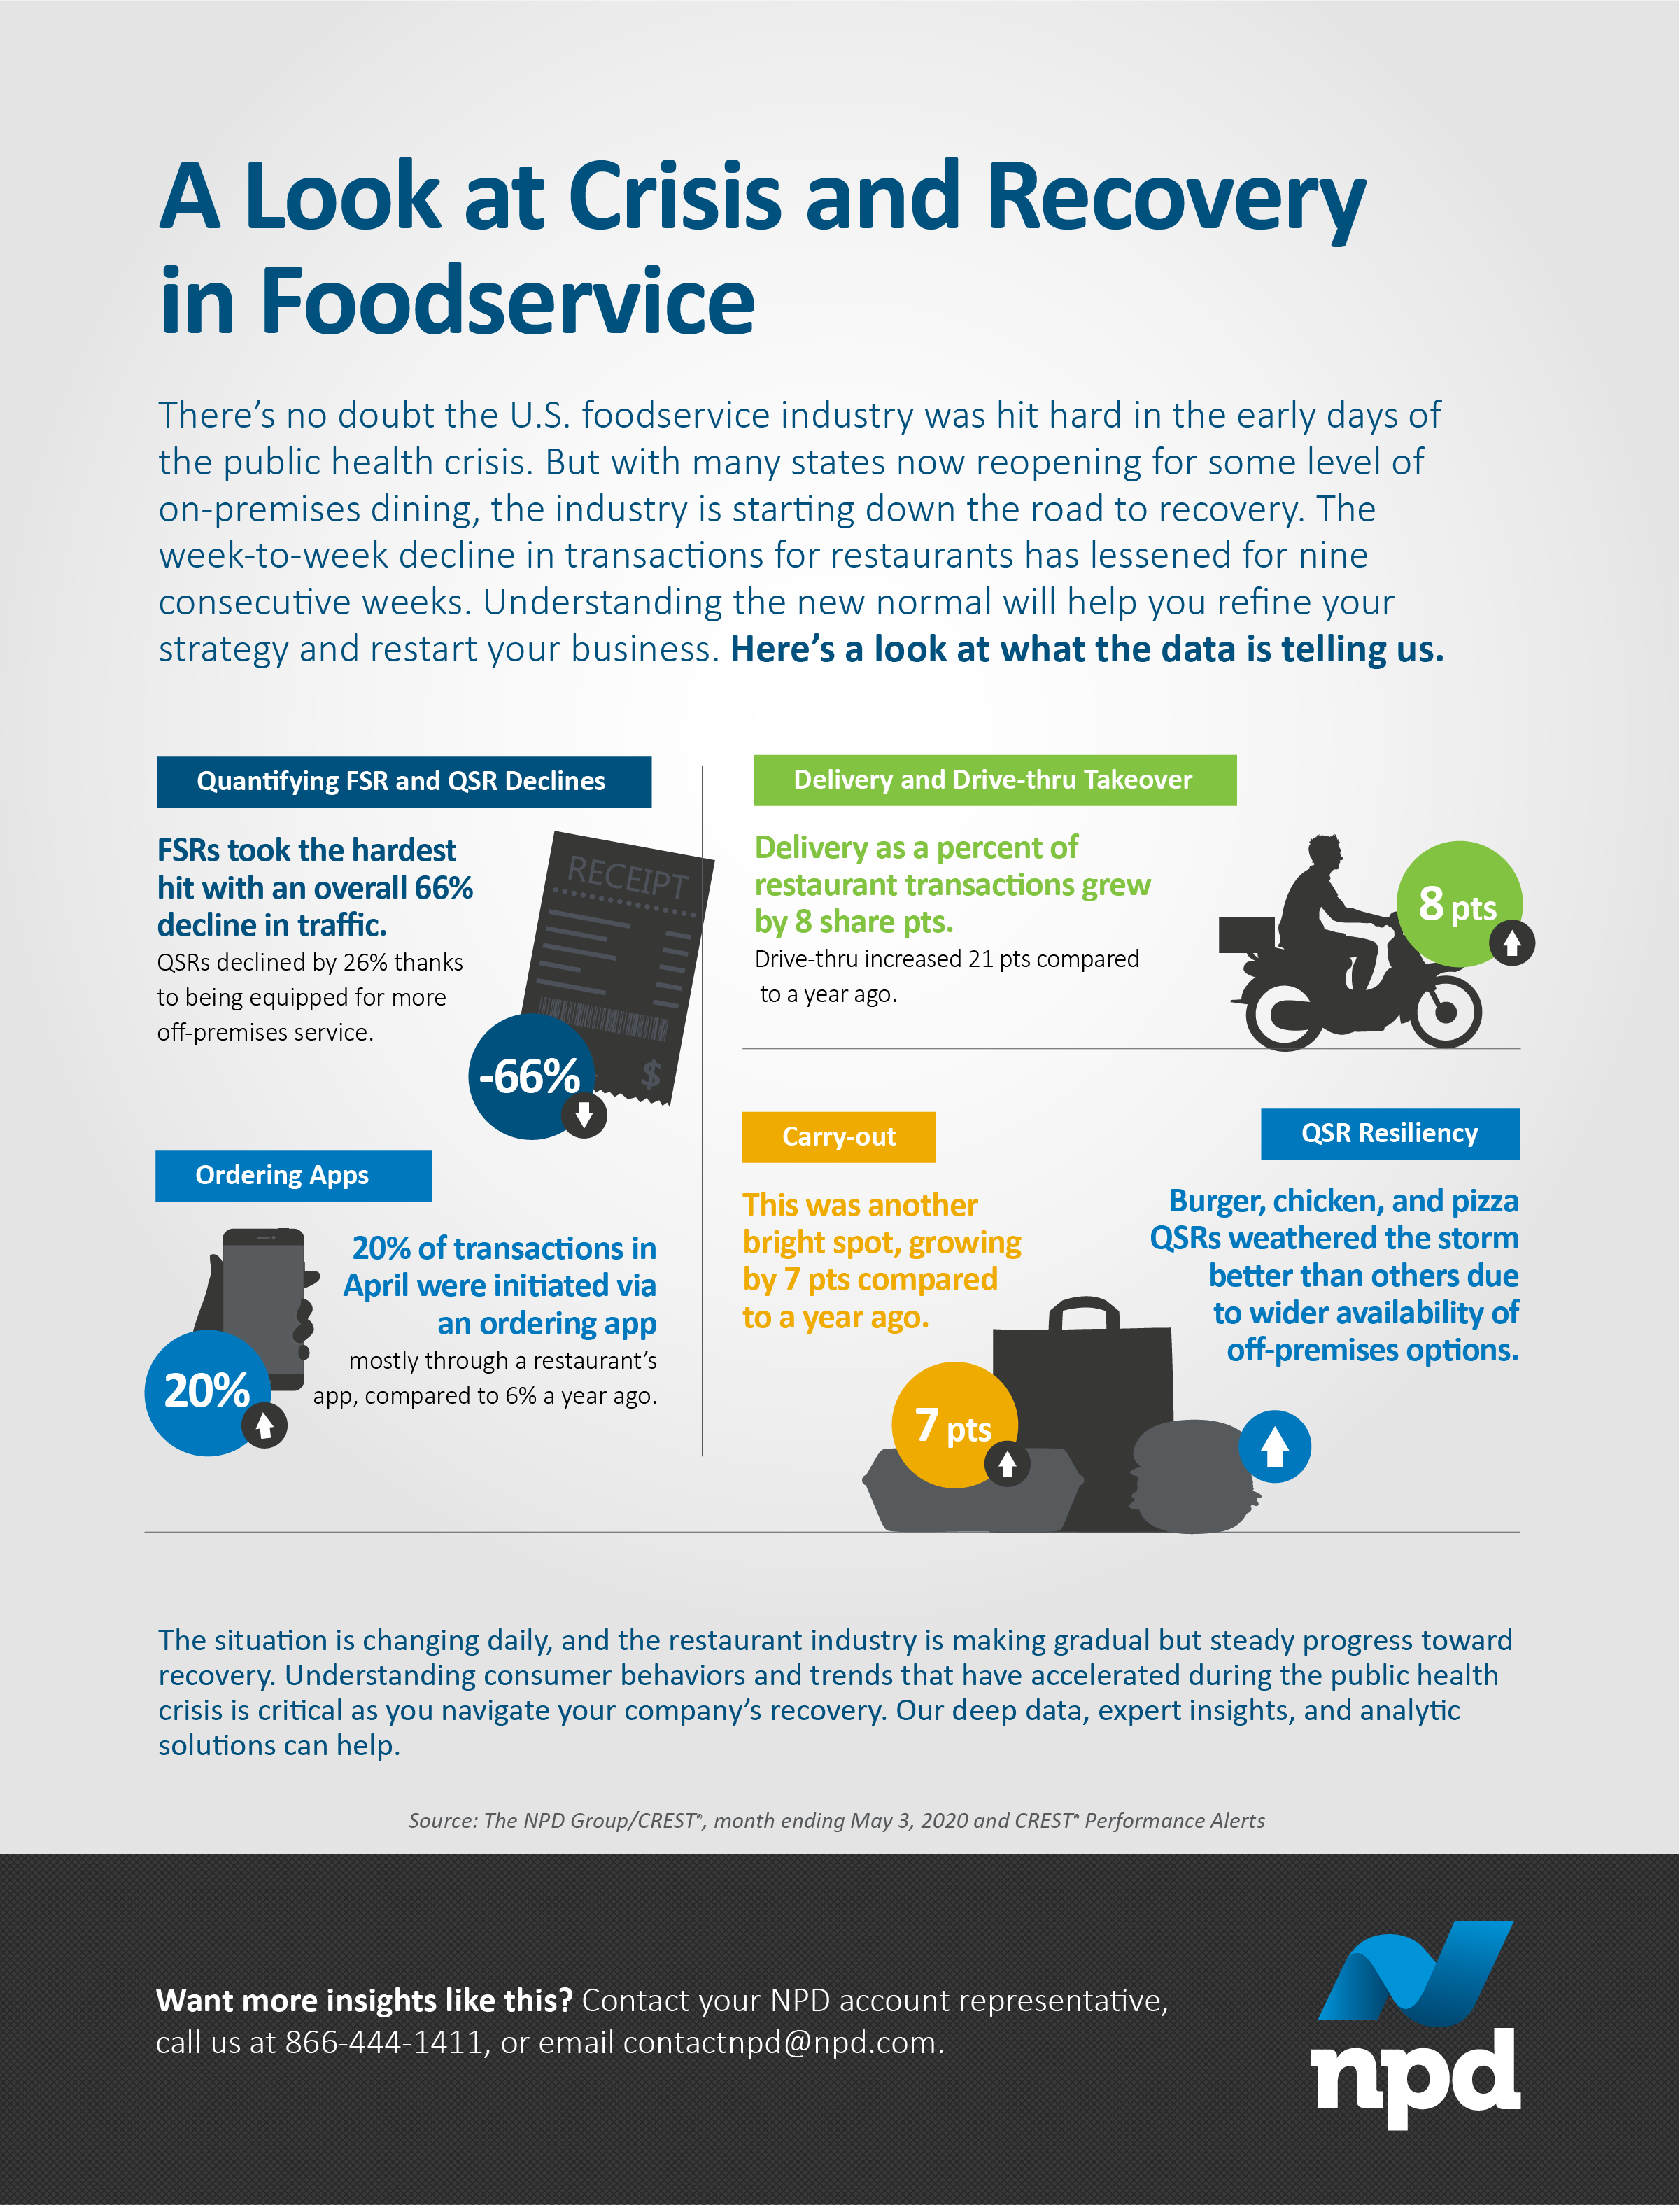 There's no doubt the U.S. foodservice industry was hit hard in the early days of the public health crisis.. But with many states now reopening for some level of on-premises dining, the industry is starting down the road to recovery.